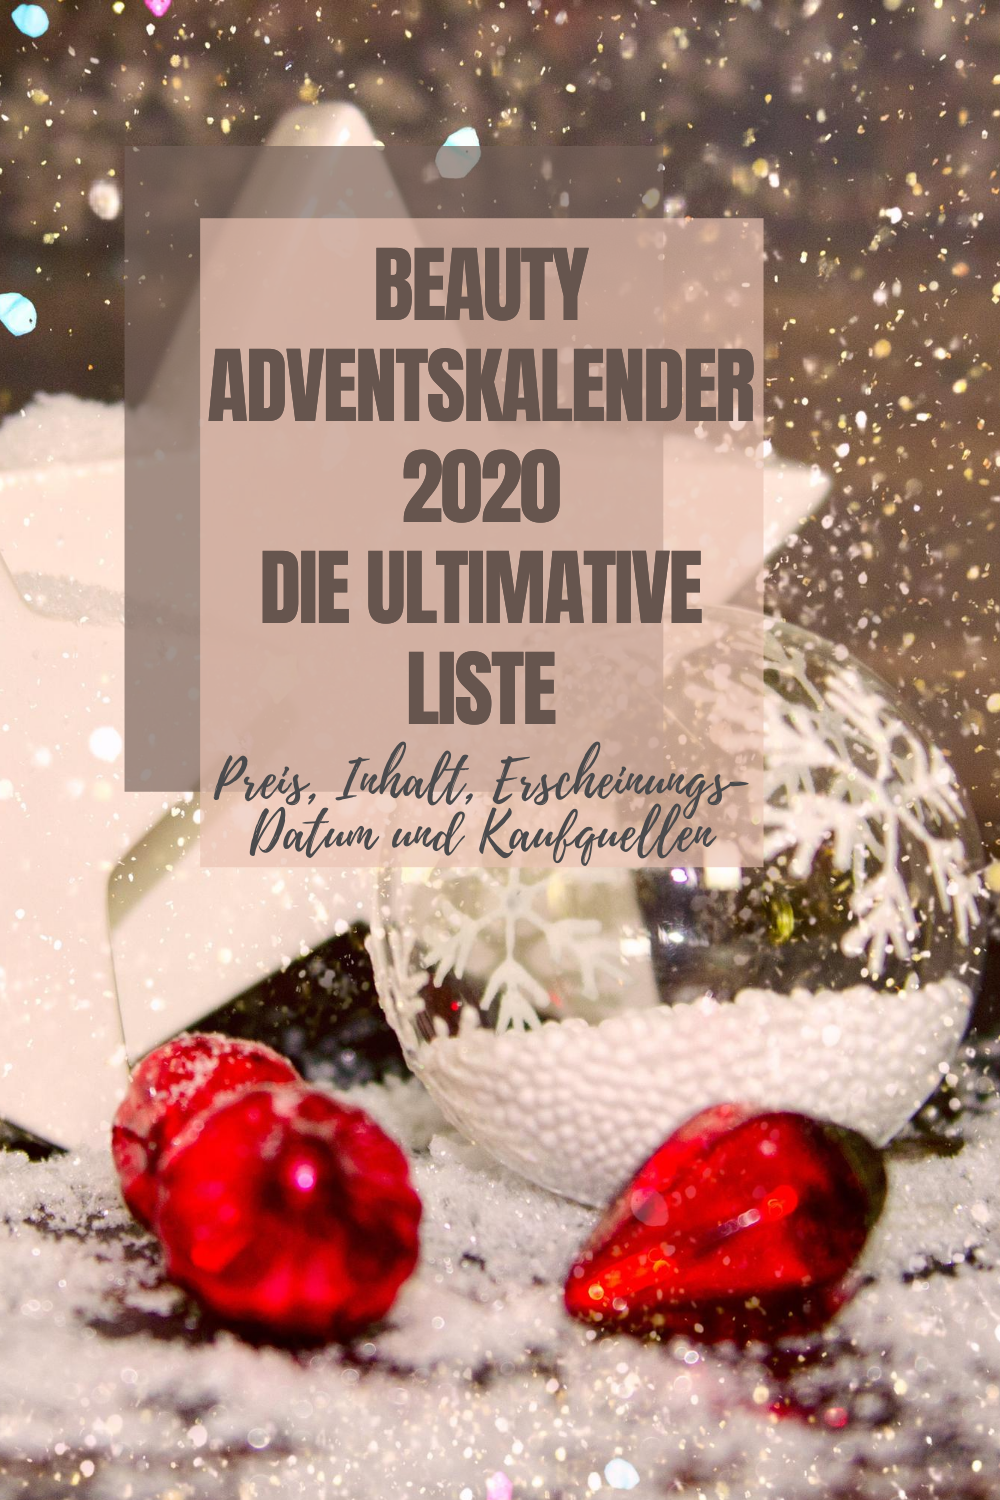 Beauty Adventskalender 2020: Ultimative Liste mit KOMPLETTEM Inhalt